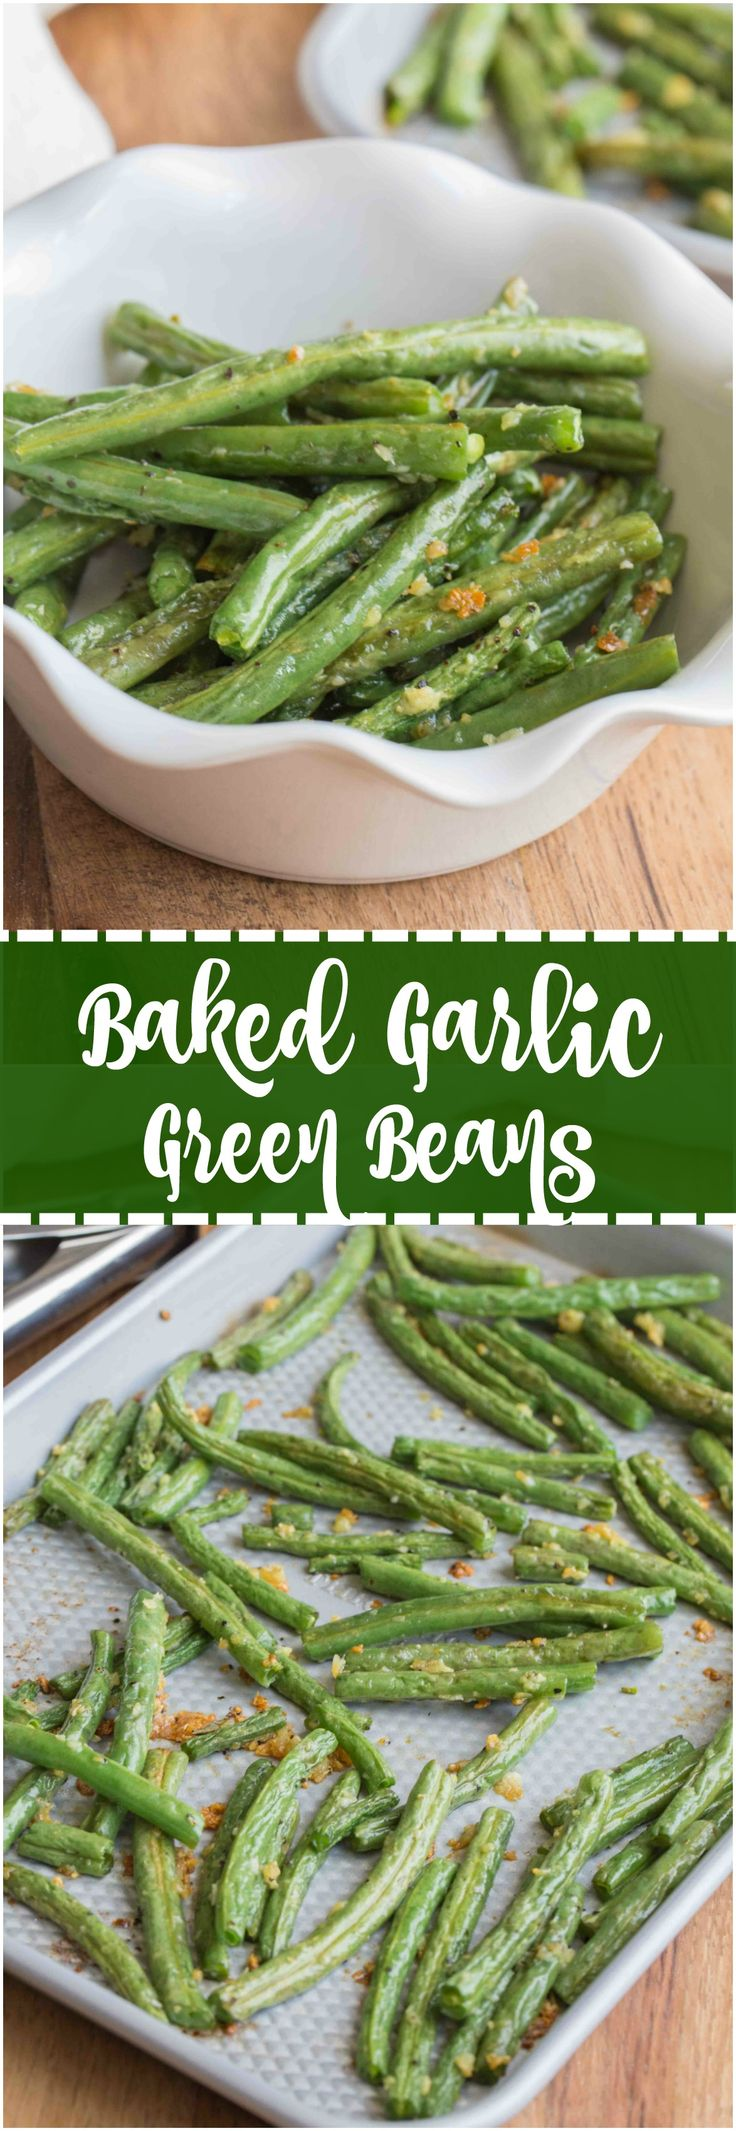 Baked Garlic Green Beans are a simple and delicious side dish that will compliment any main entree. Crunchy green beans and roasted garlic, make this one easy yummy side! #greenbeans #baked #healthy #delicious